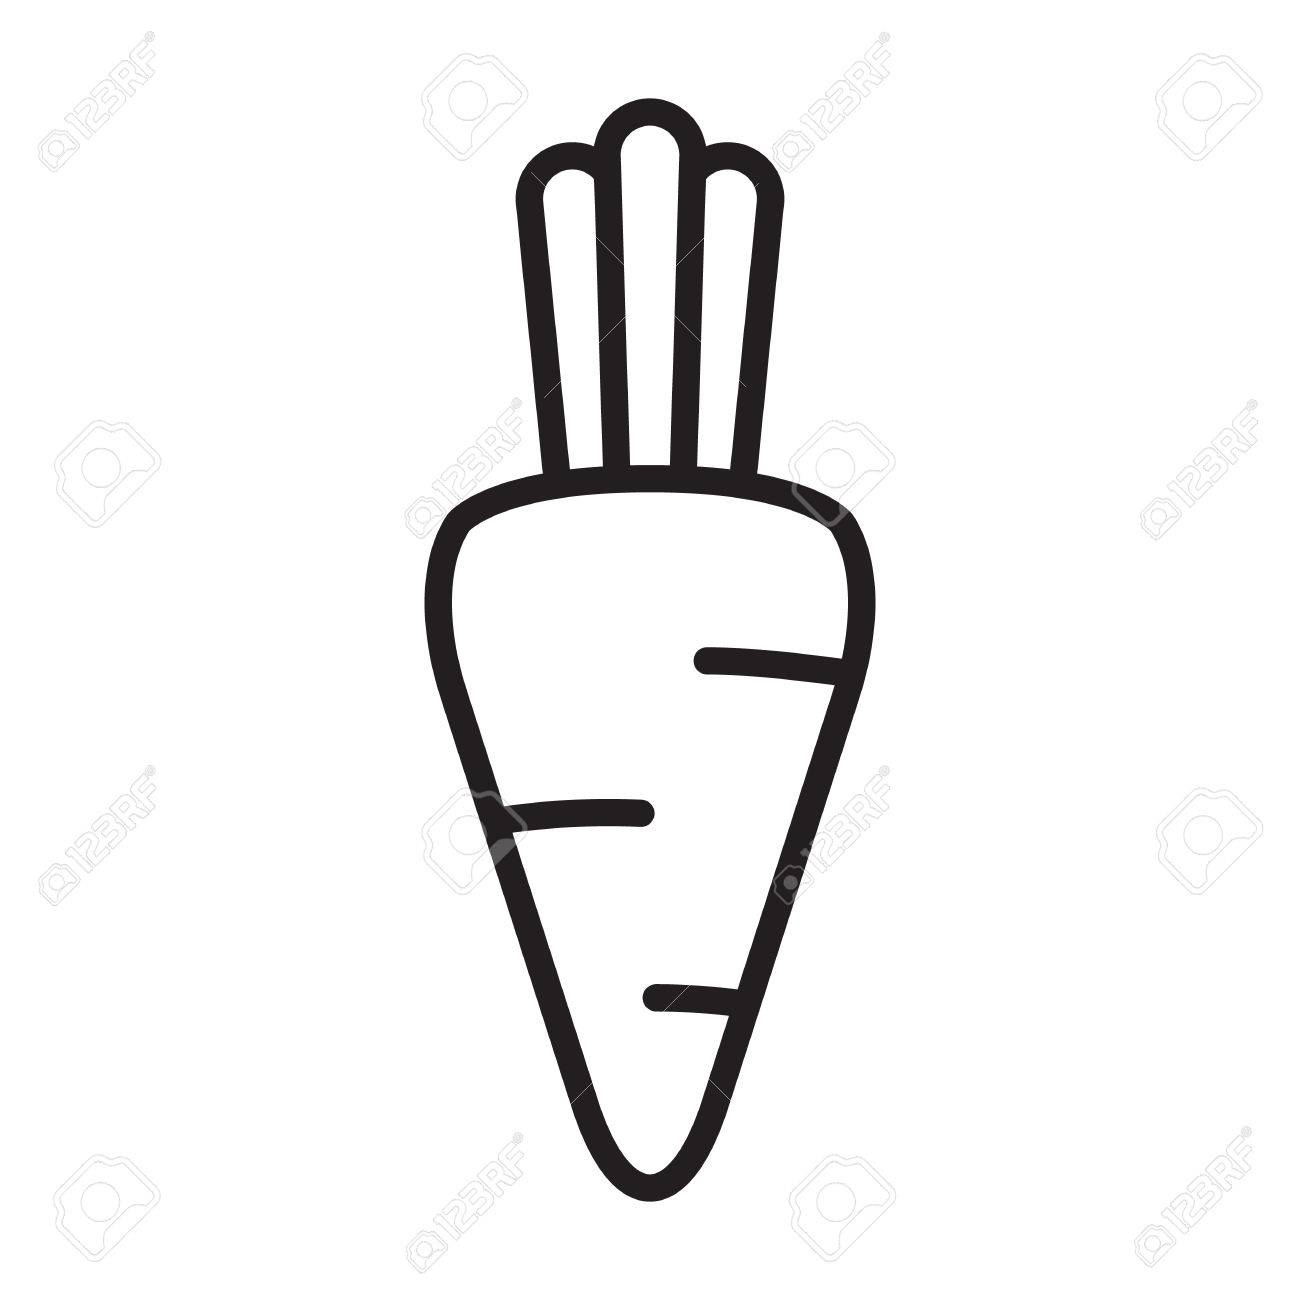 Carrot Outline Icon, Modern Minimal Flat Design Style, Vector ... for Carrot Outline  545xkb